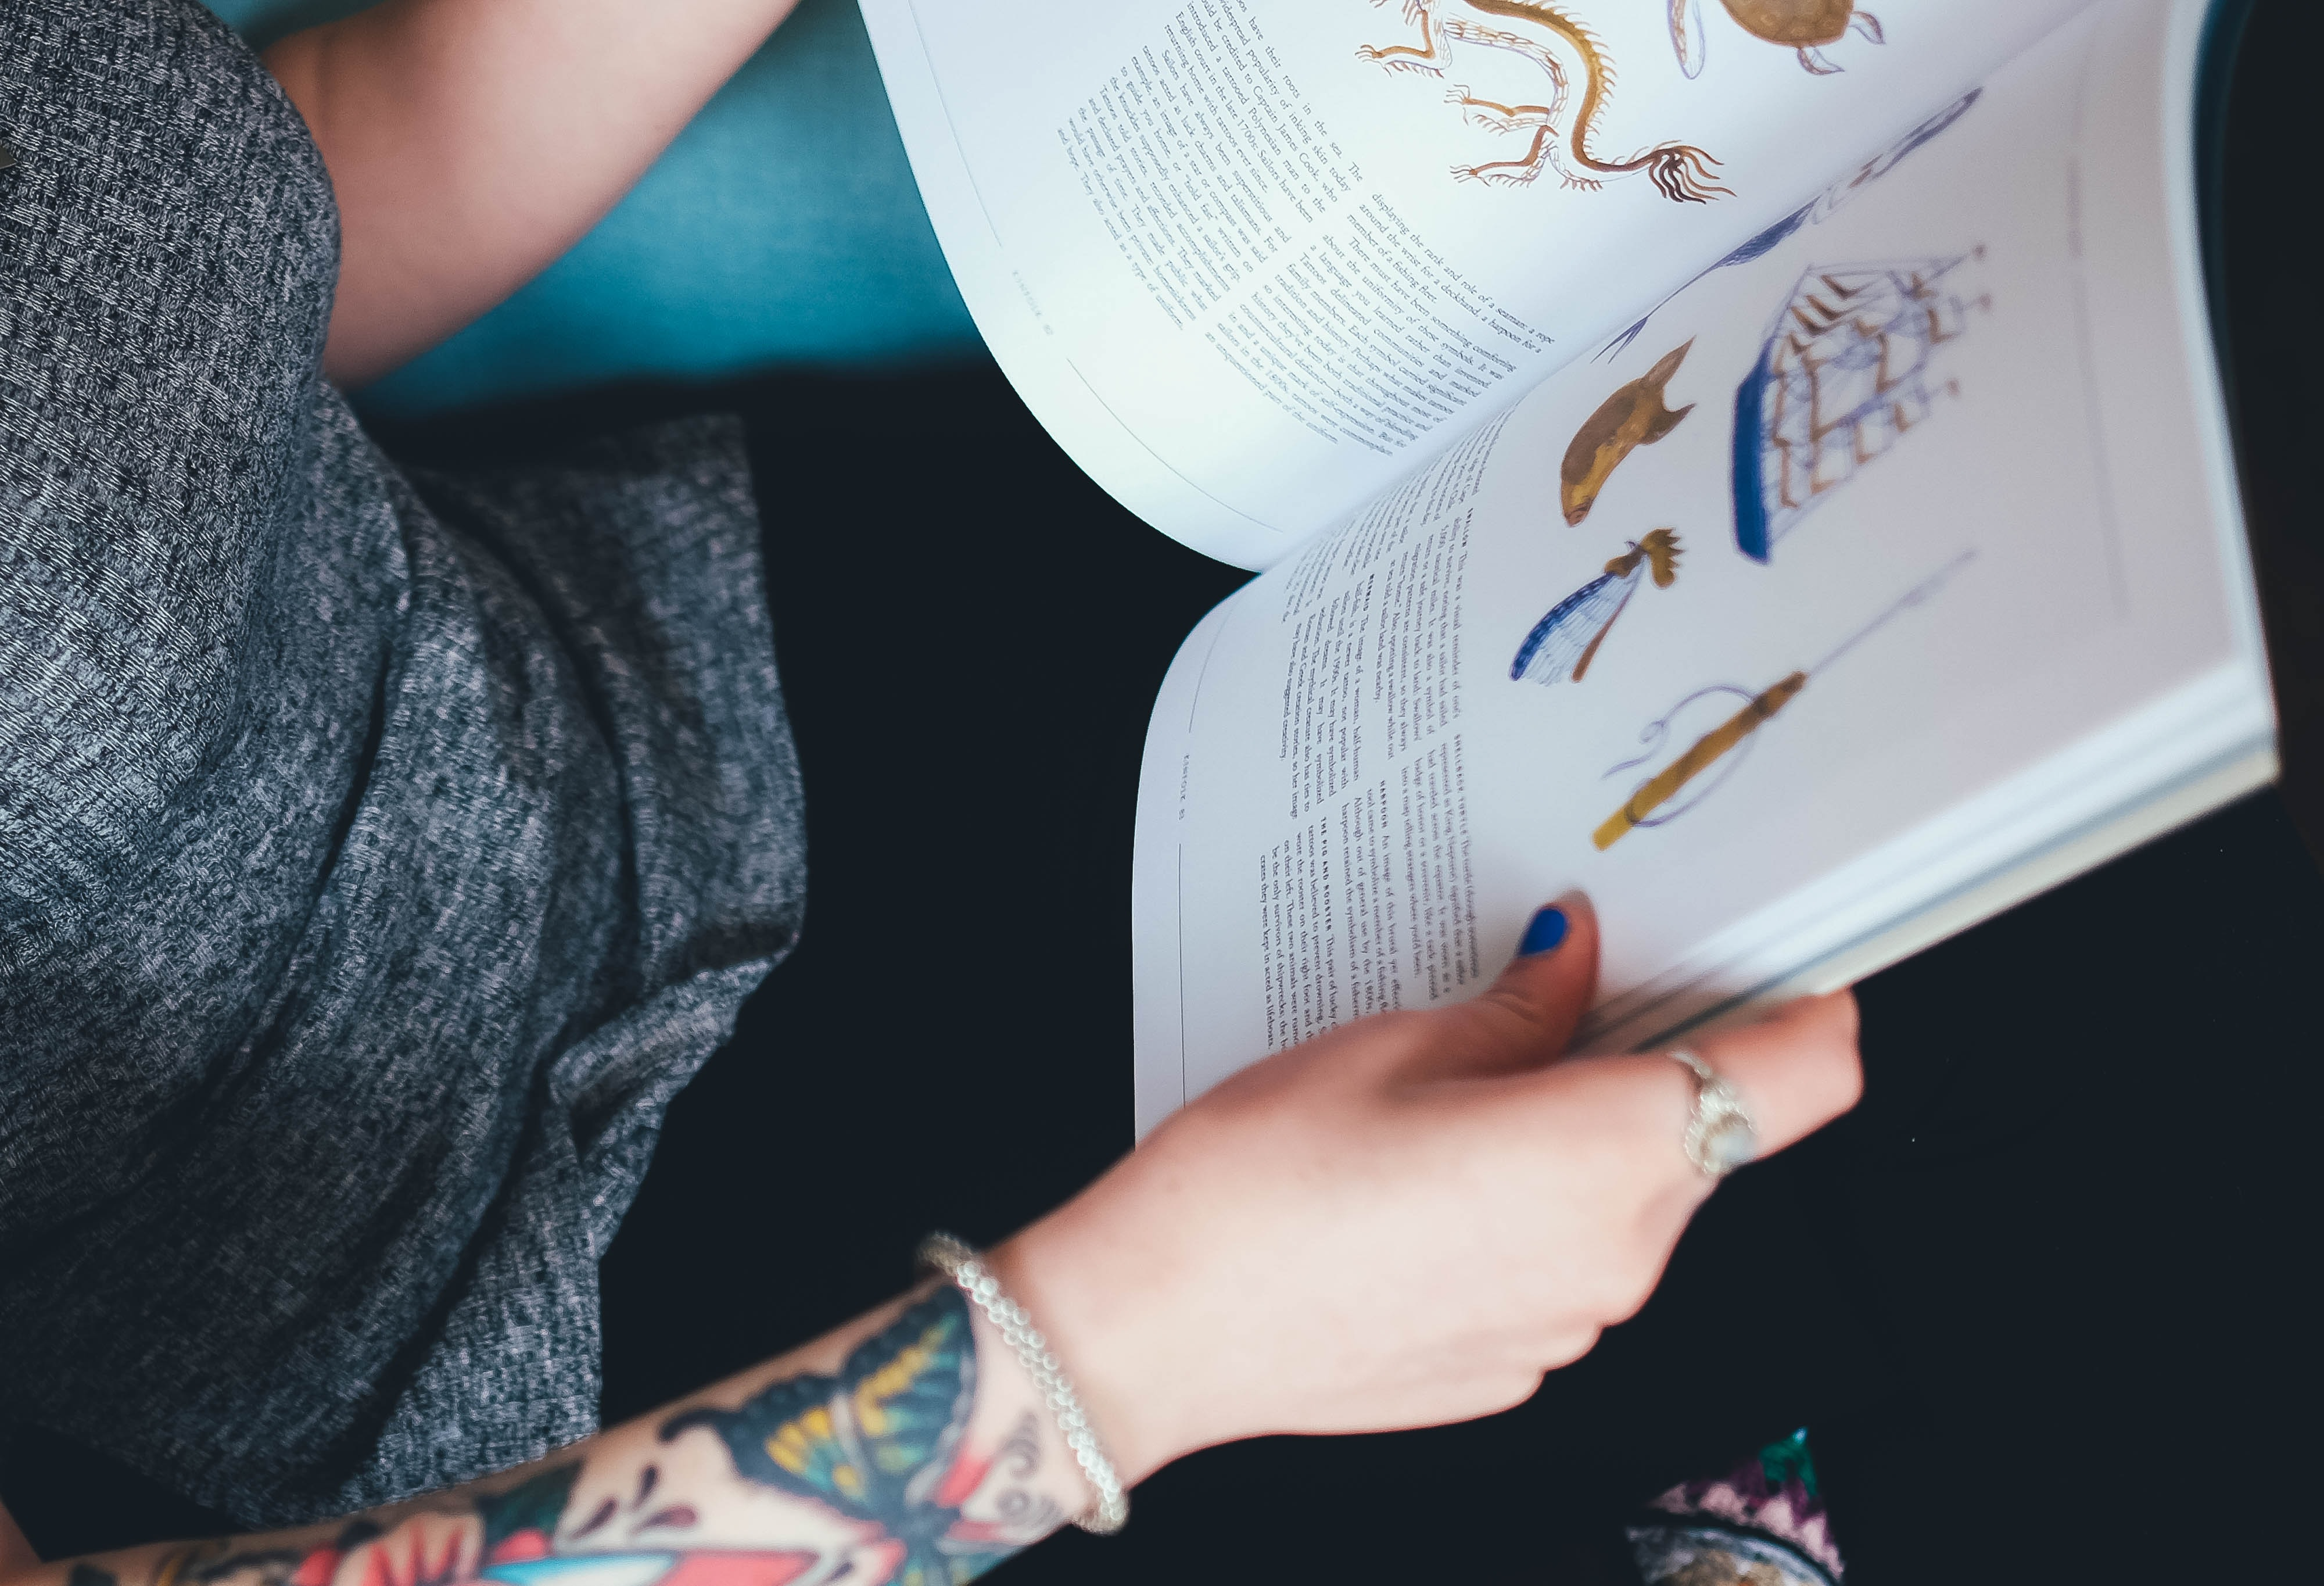 Woman with colorful butterfly tattoos sitting down, reading a book with drawings of animals and ships